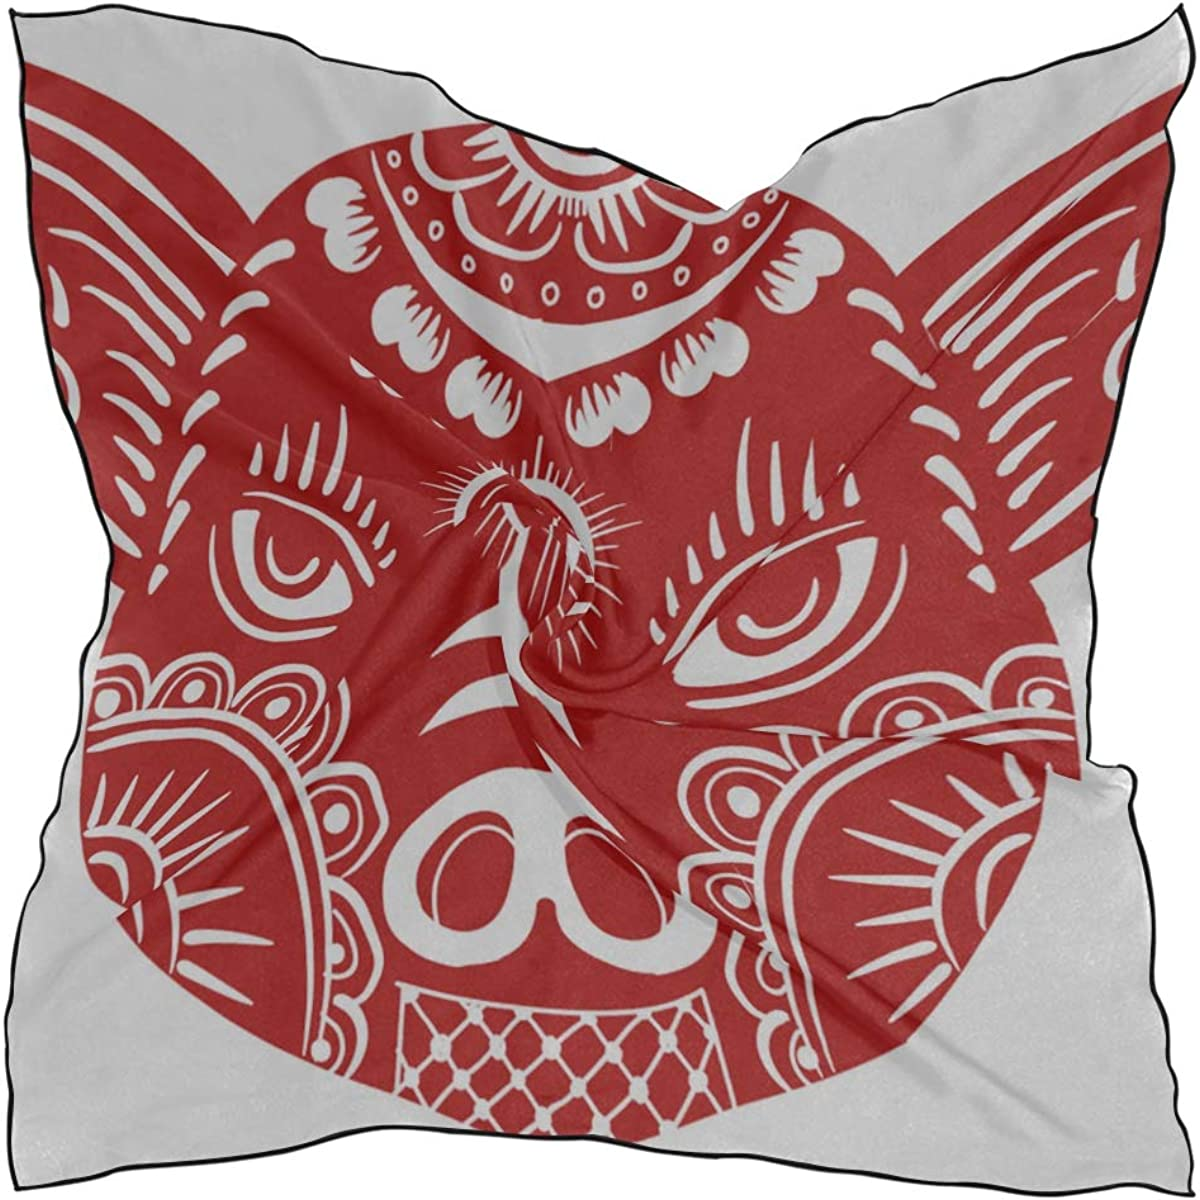 Soft Polyester Silk Square Scarf Fashion Print Chinese Traditional Paper Red Pig Wrap Hair Scarf Hair Scarf Wrap Head Scarf Multiple Ways Of Wearing Daily Decor